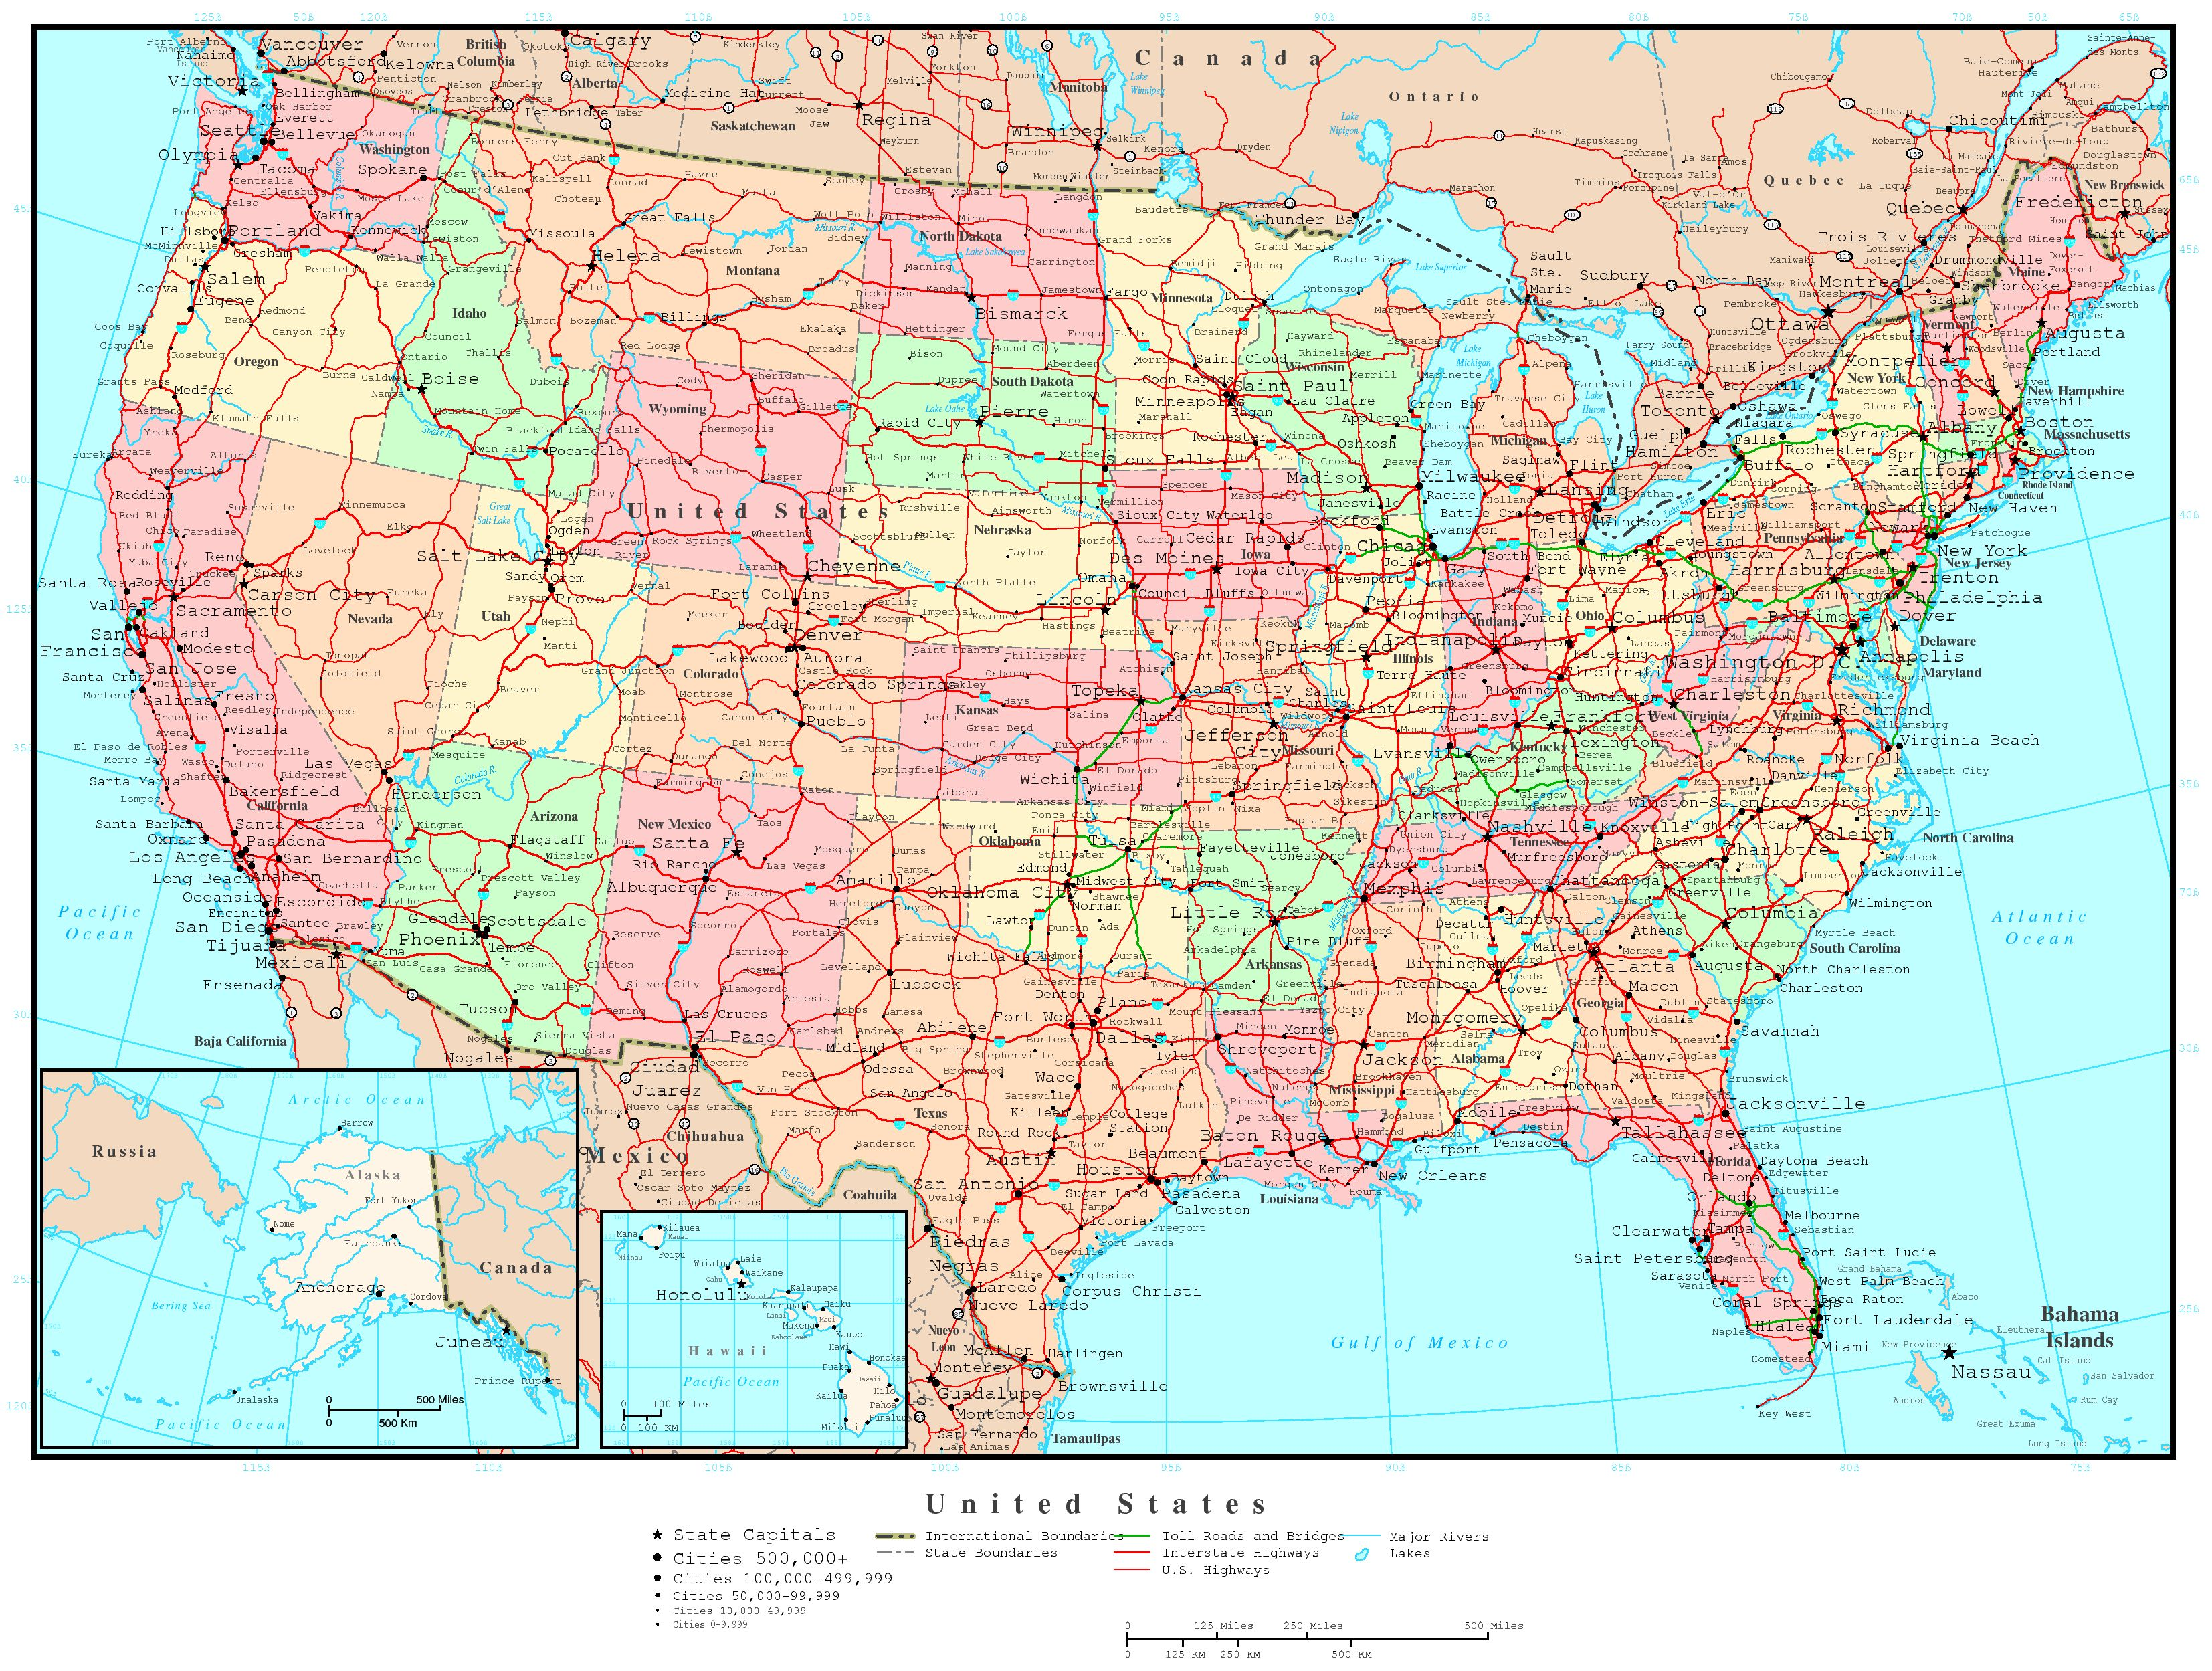 United States Political Map - Usa maps with states